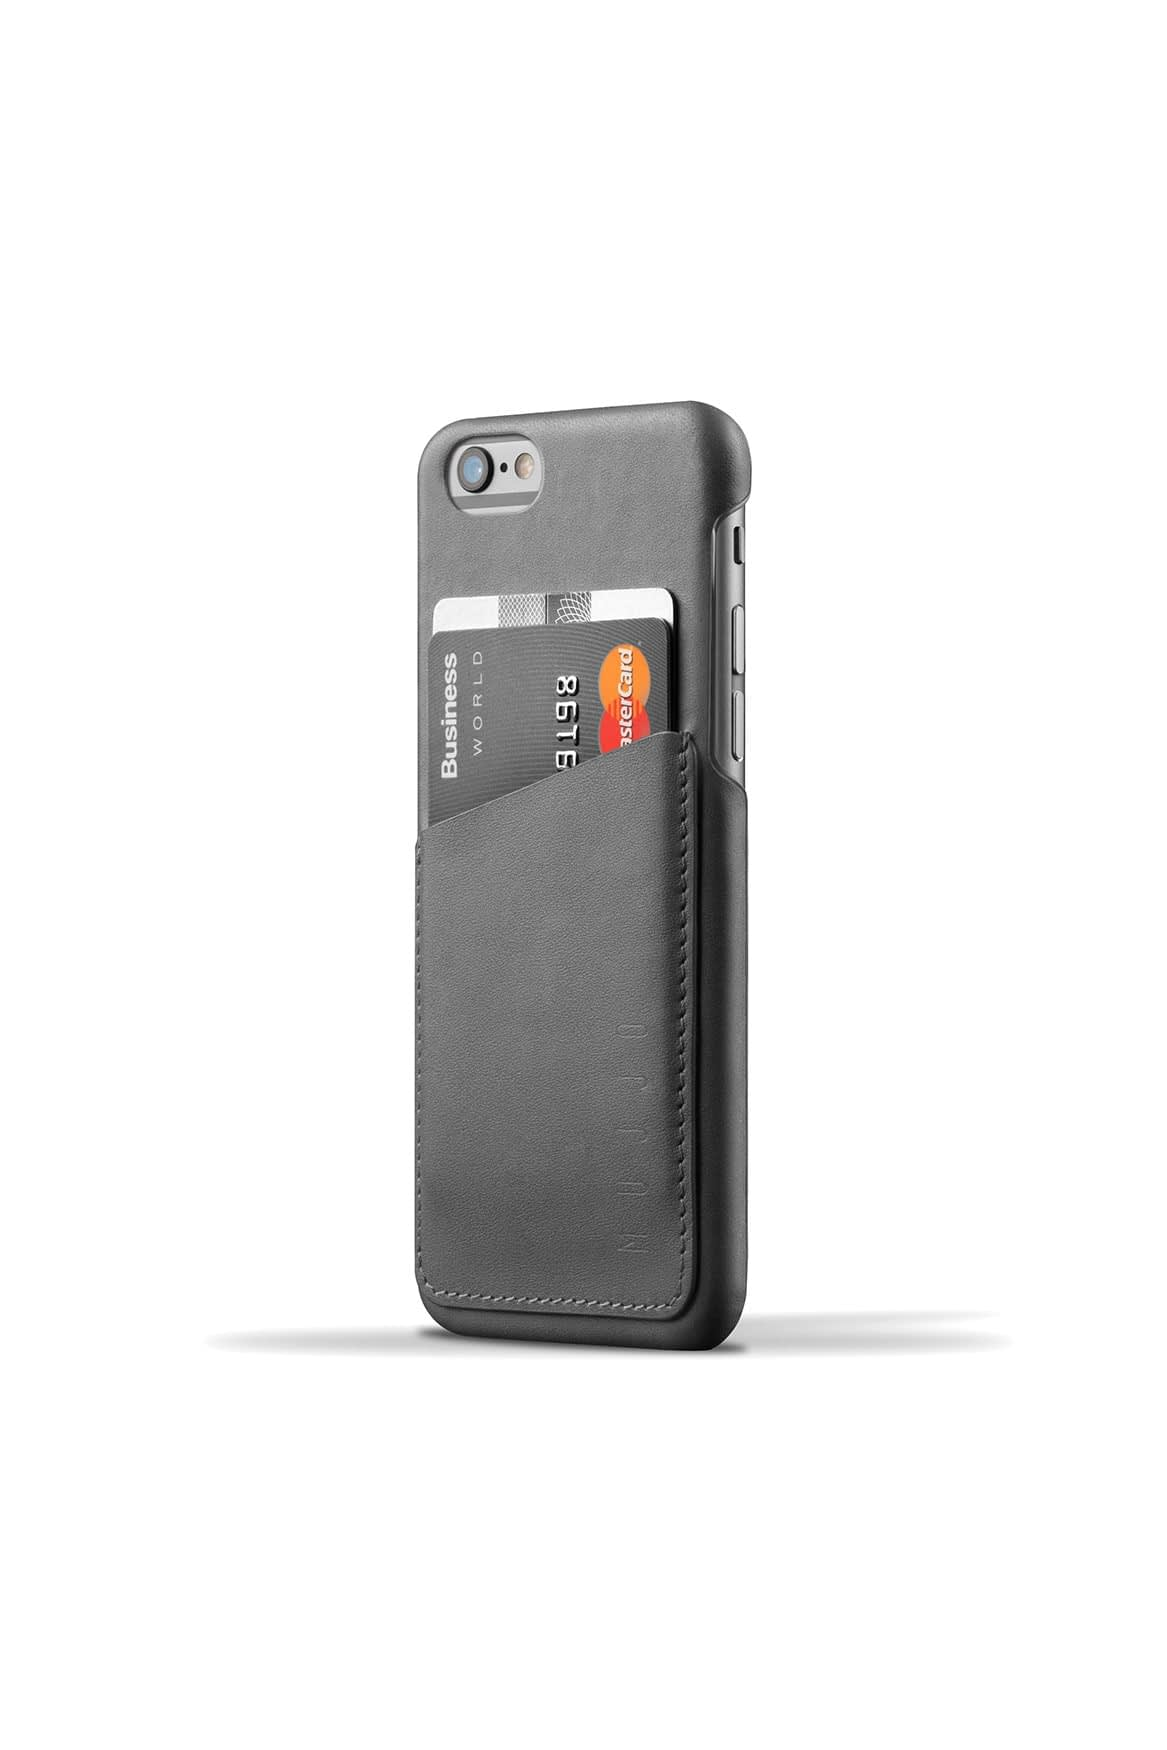 Leather Wallet Case for iPhone 6s Gray 001